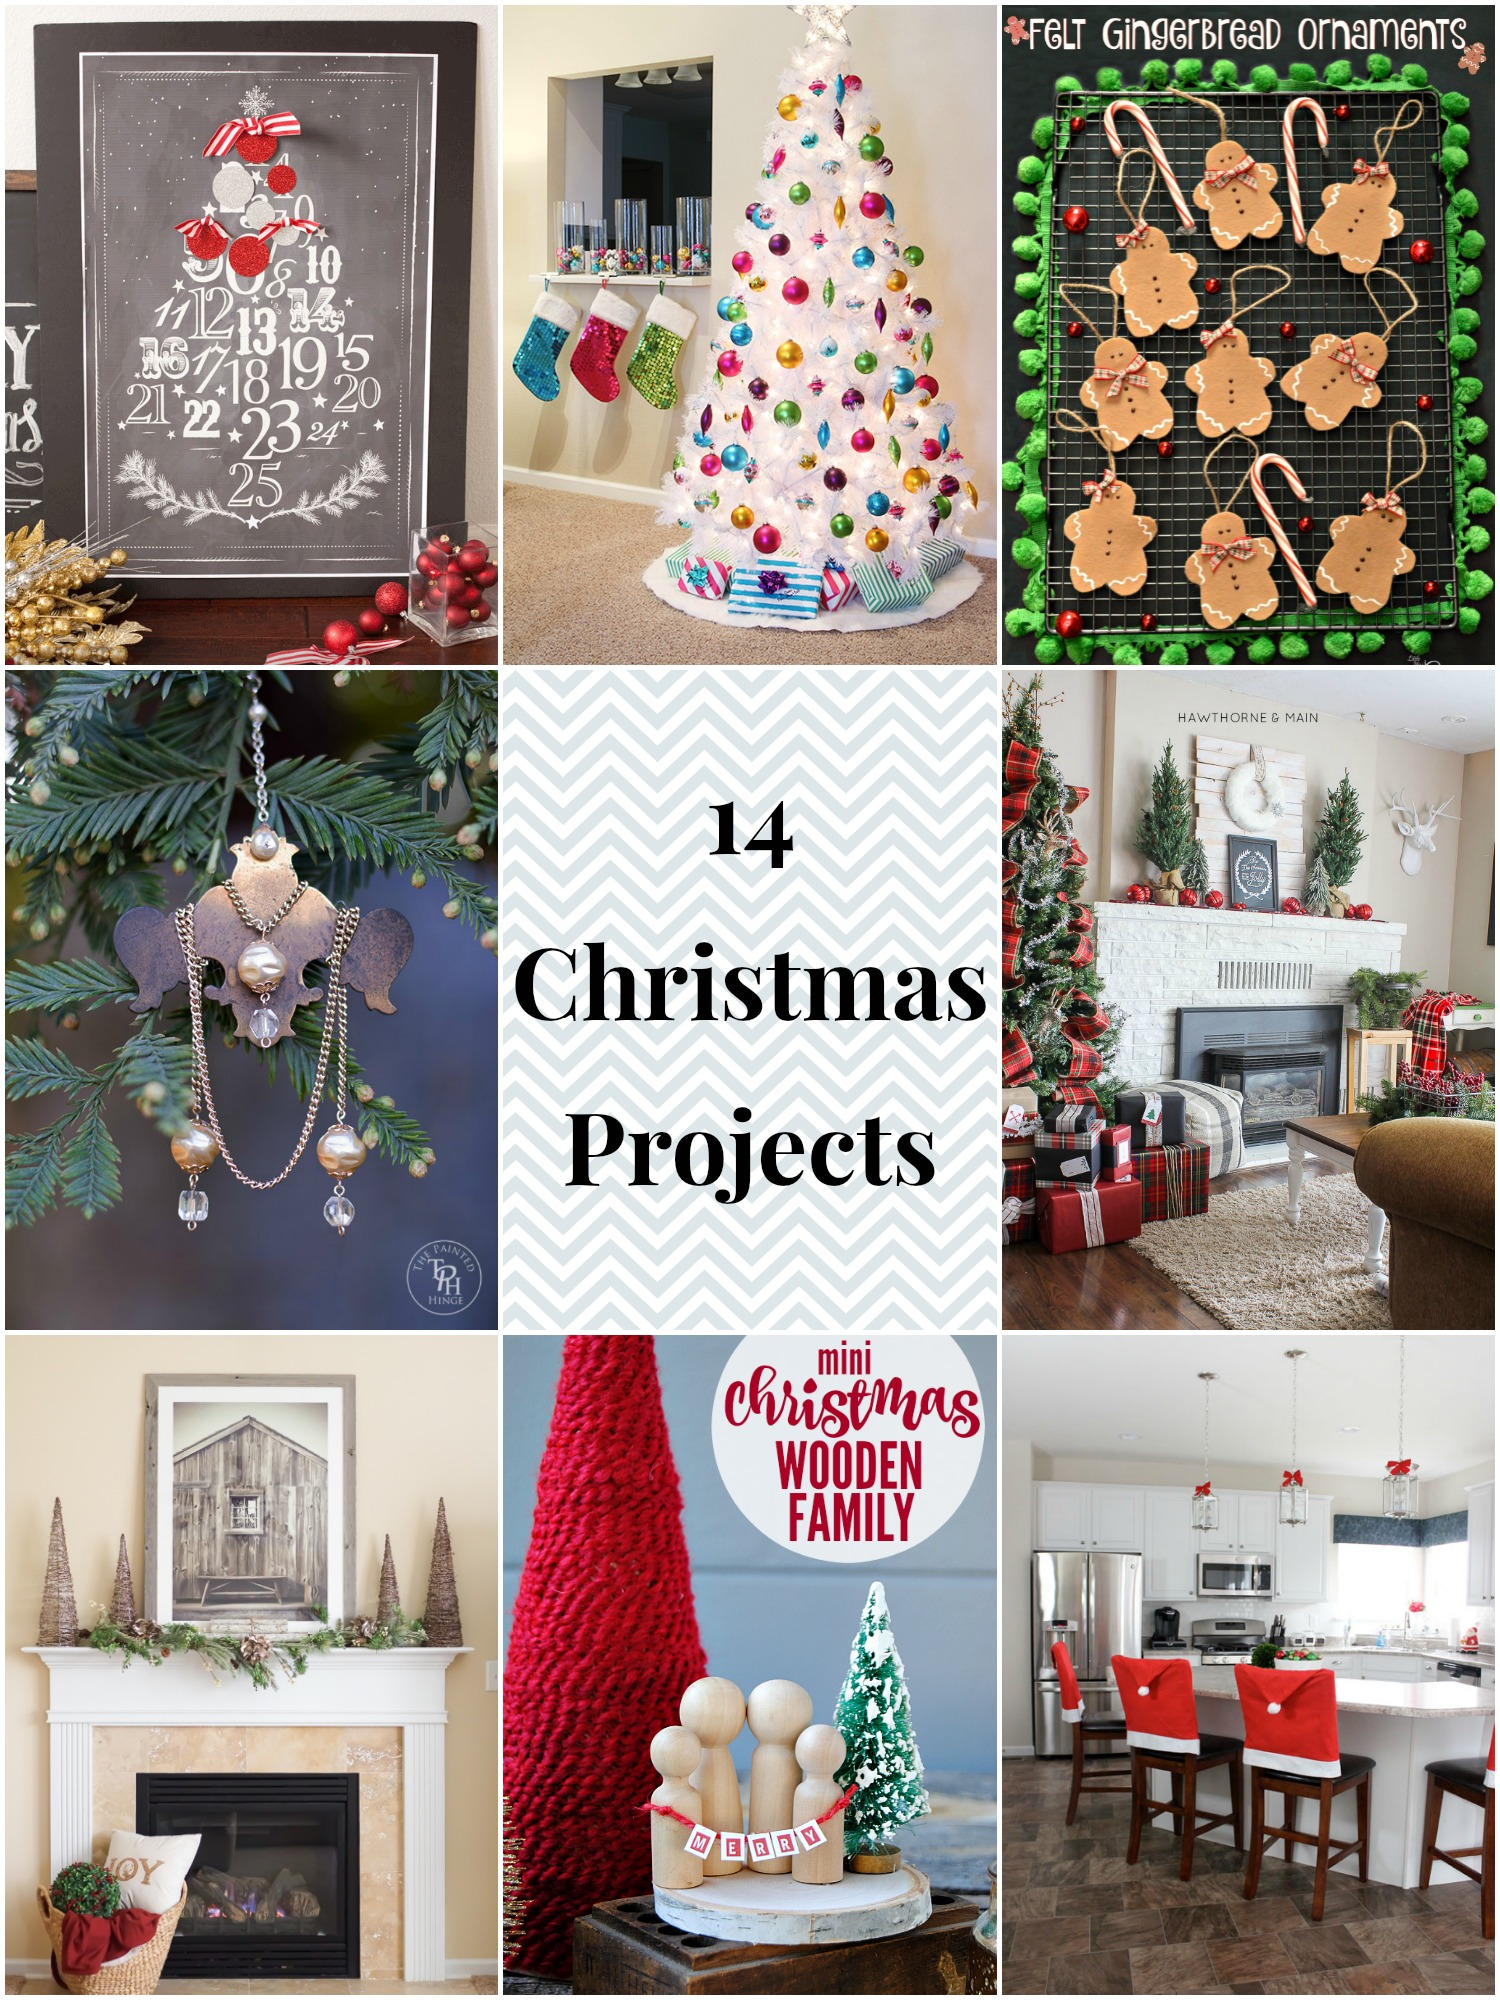 Decorate your home for Christmas with these 14 awesome Christmas decor projects!